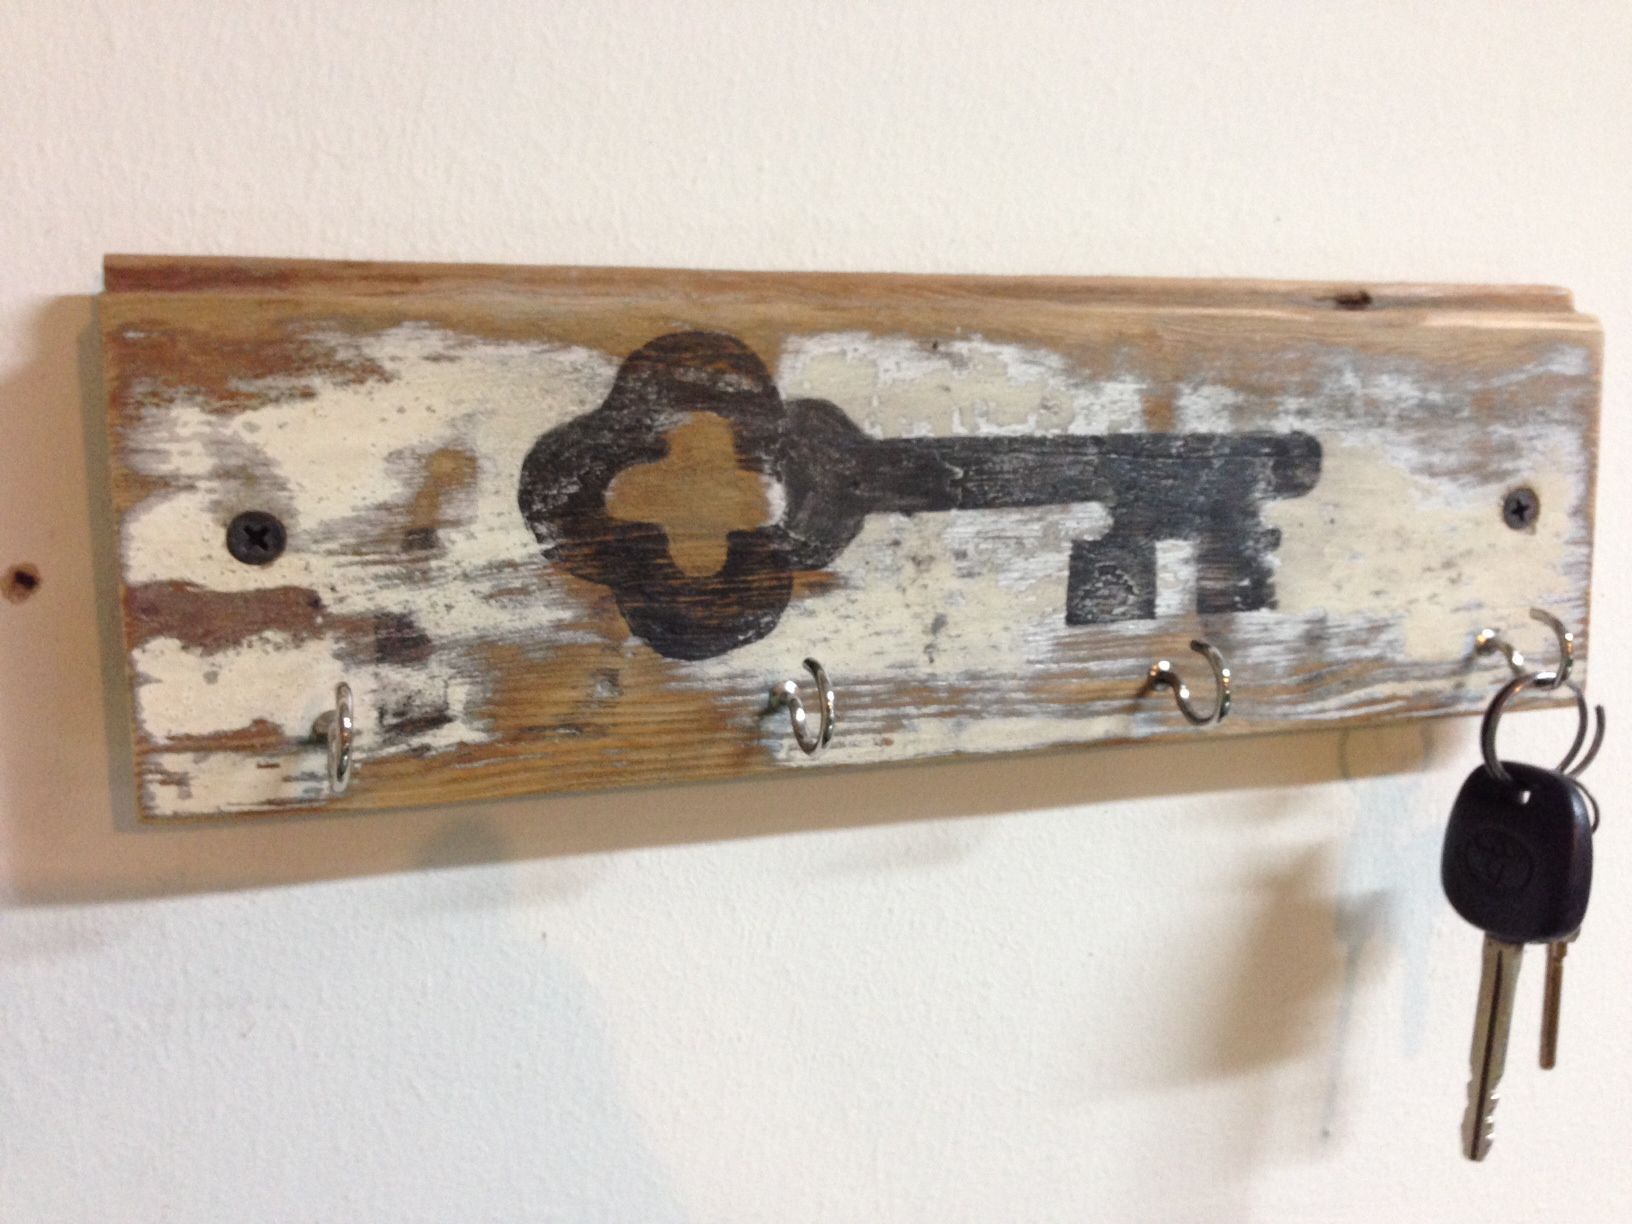 Wooden Key Holder With Shelf Reclaimed Wood Wall Key Holder Rack With Vintage Key